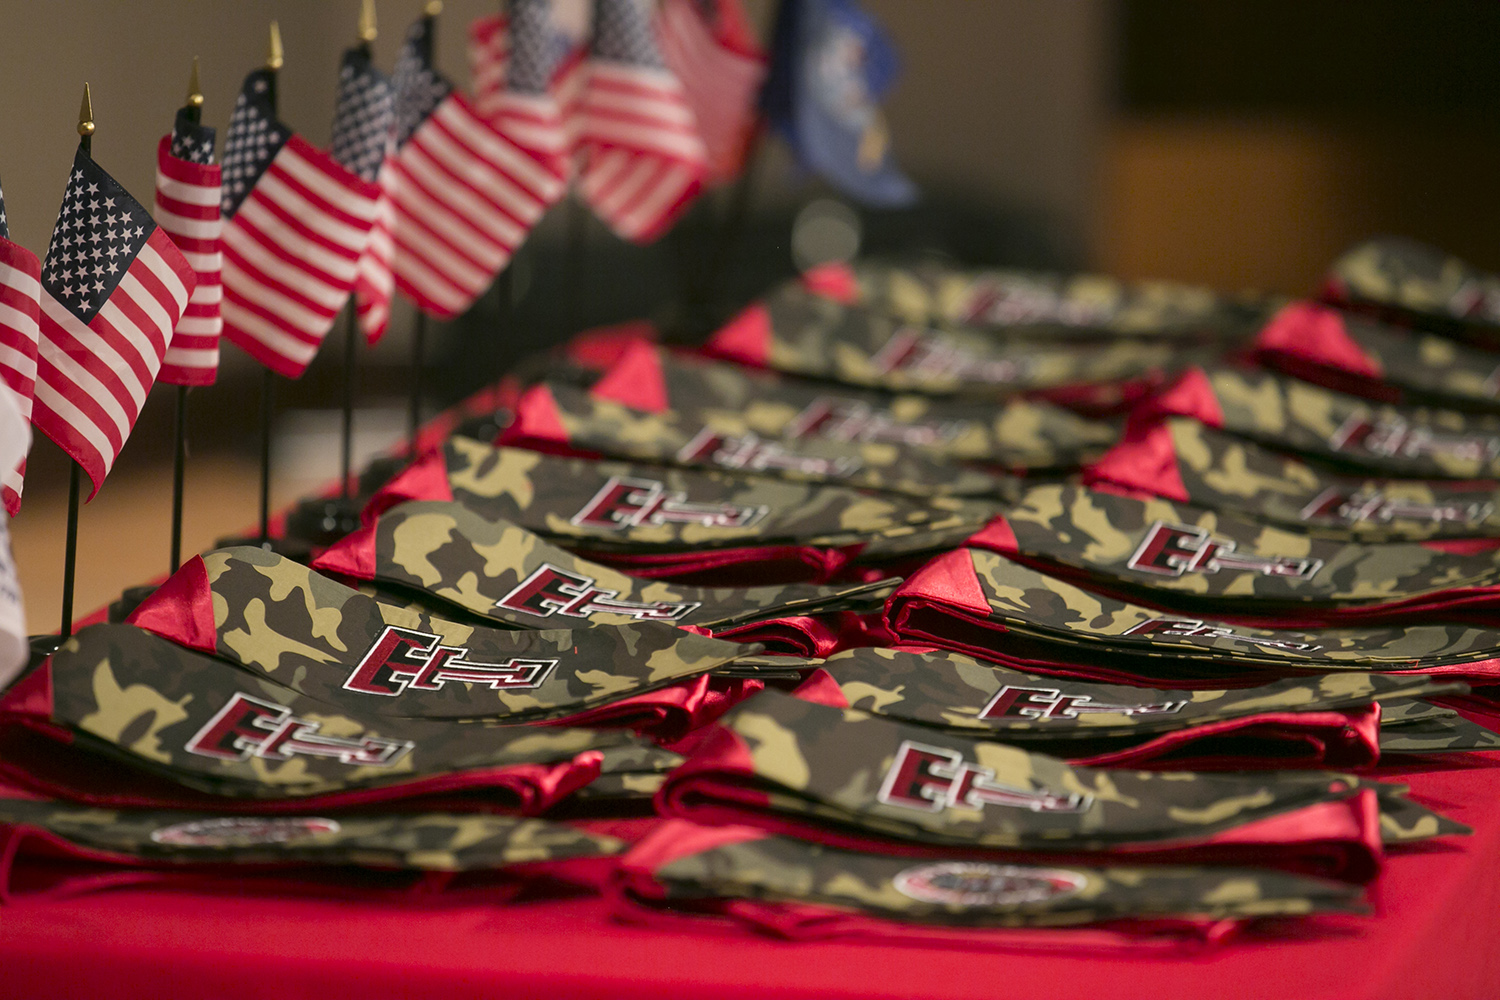 Stoles presented to members of Military & Veterans Programs